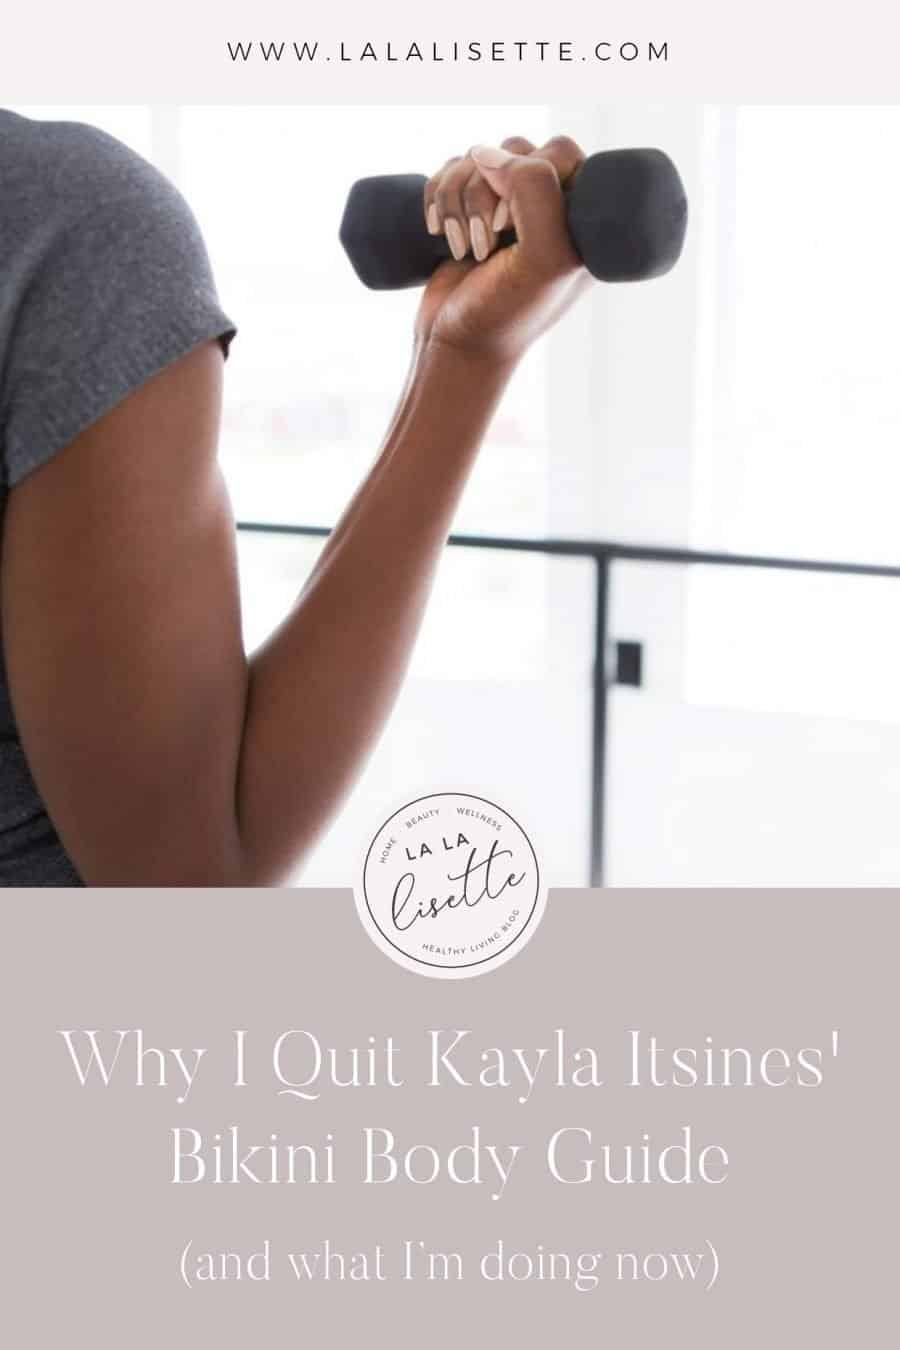 image of bicep curl with text: Why I Quit Kayla Itsines' Bikini Body Guide